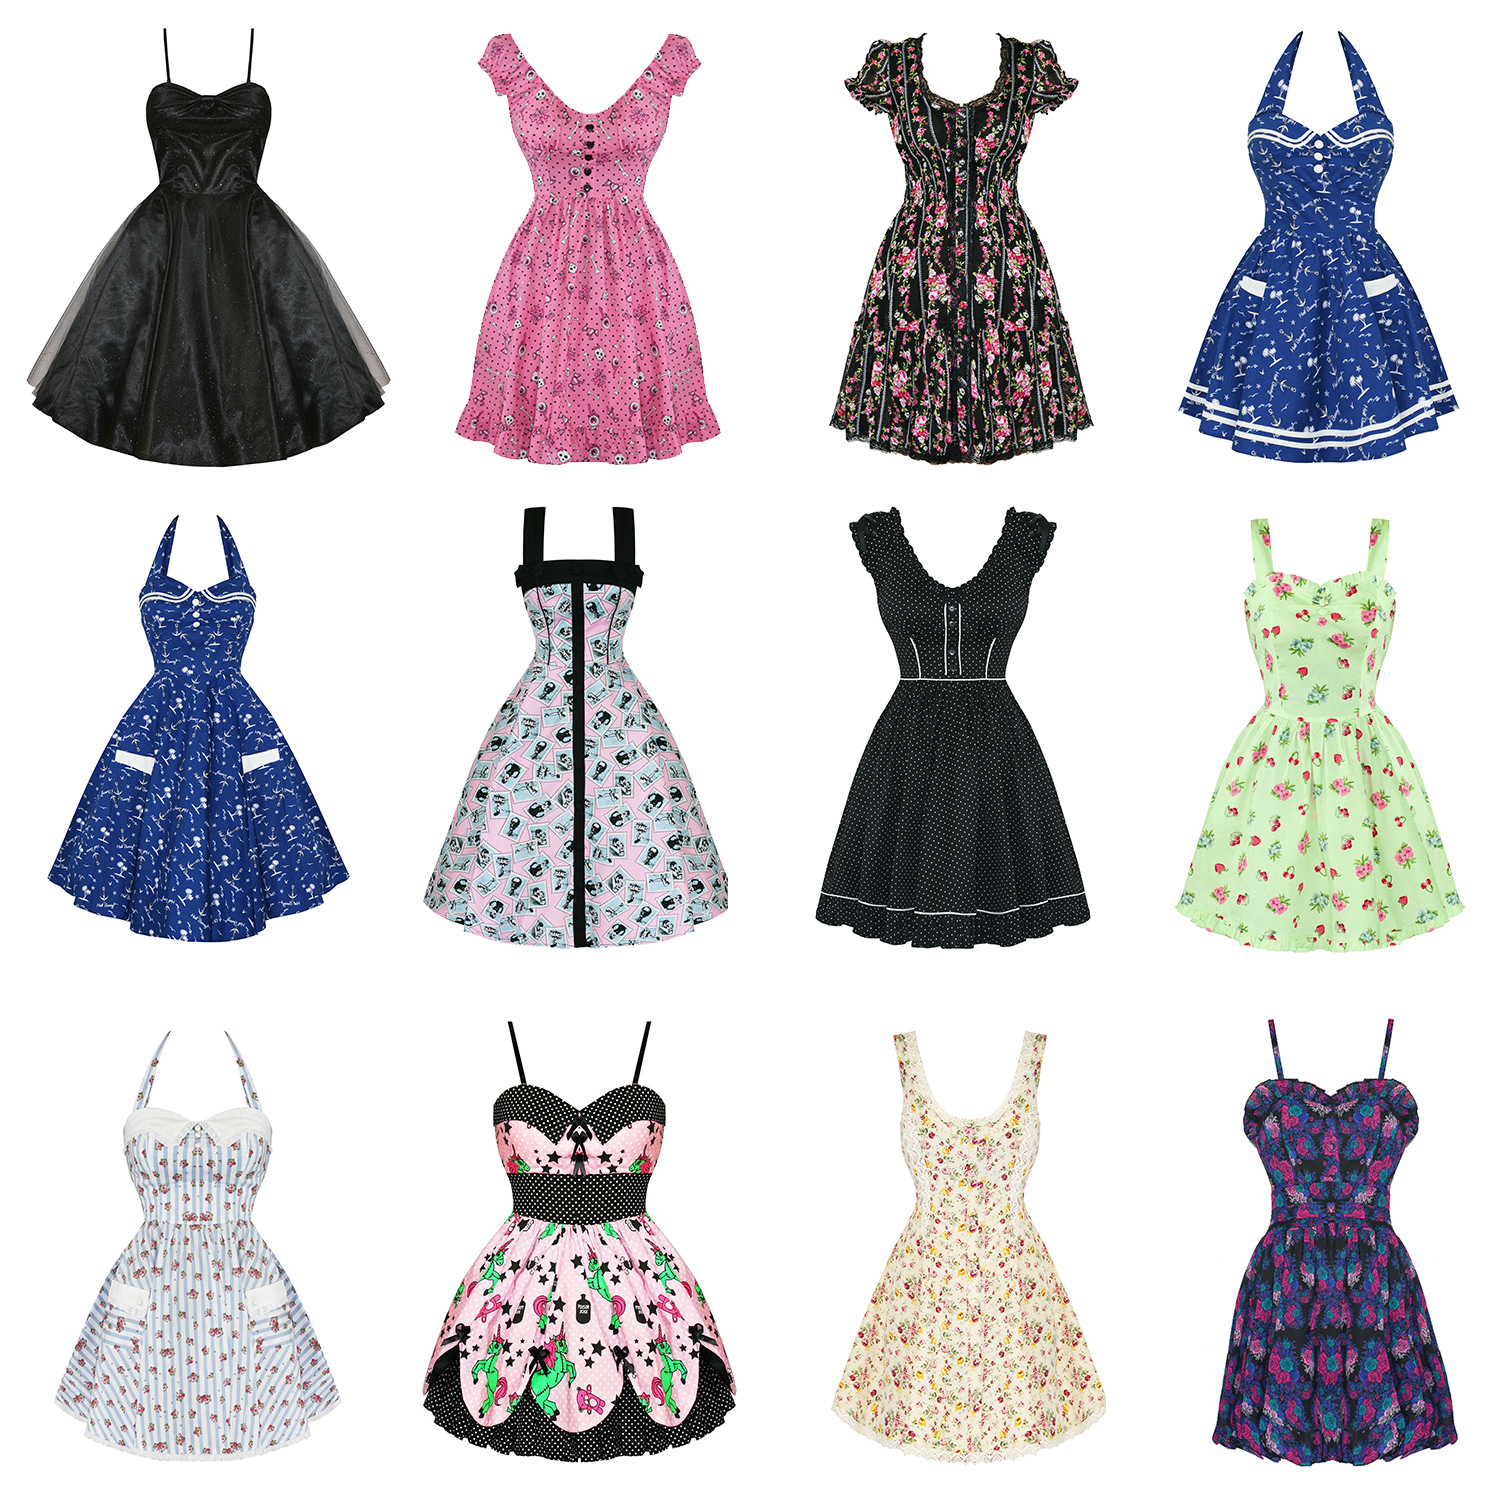 Incredible 50s Style Dresses for Women for Sale 1500 x 1500 · 1084 kB · jpeg